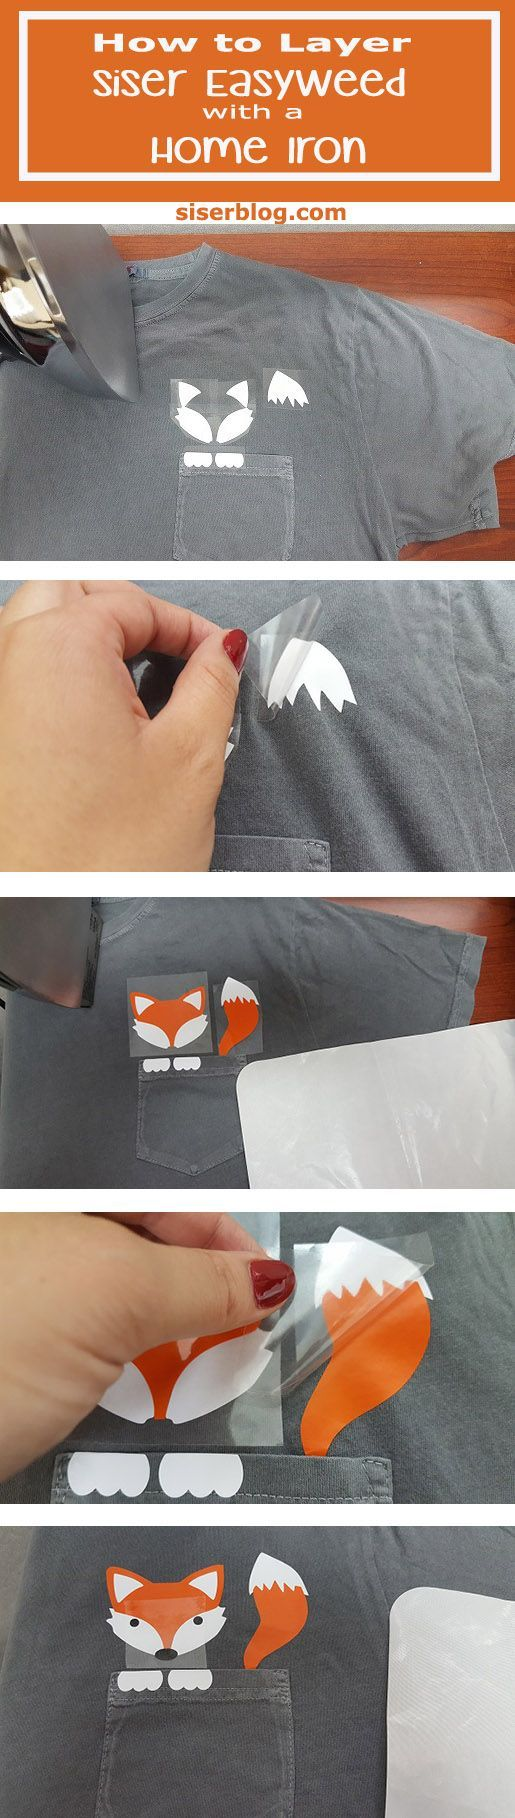 How to Layer Siser EasyWeed™ with a Home Iron using EasyWeed™ Scraps.siserblog.com. Silhouette Cameo project. Cricut Project. Brother Scan n Cut project. iron on vinyl. HTV - mens white and black shirt, custom shirt printing, mens navy blue button down shirt *sponsored https://www.pinterest.com/shirts_shirt/ https://www.pinterest.com/explore/shirts/ https://www.pinterest.com/shirts_shirt/cool-shirts/ http://www1.macys.com/shop/mens-clothing/mens-shirts?id=20626